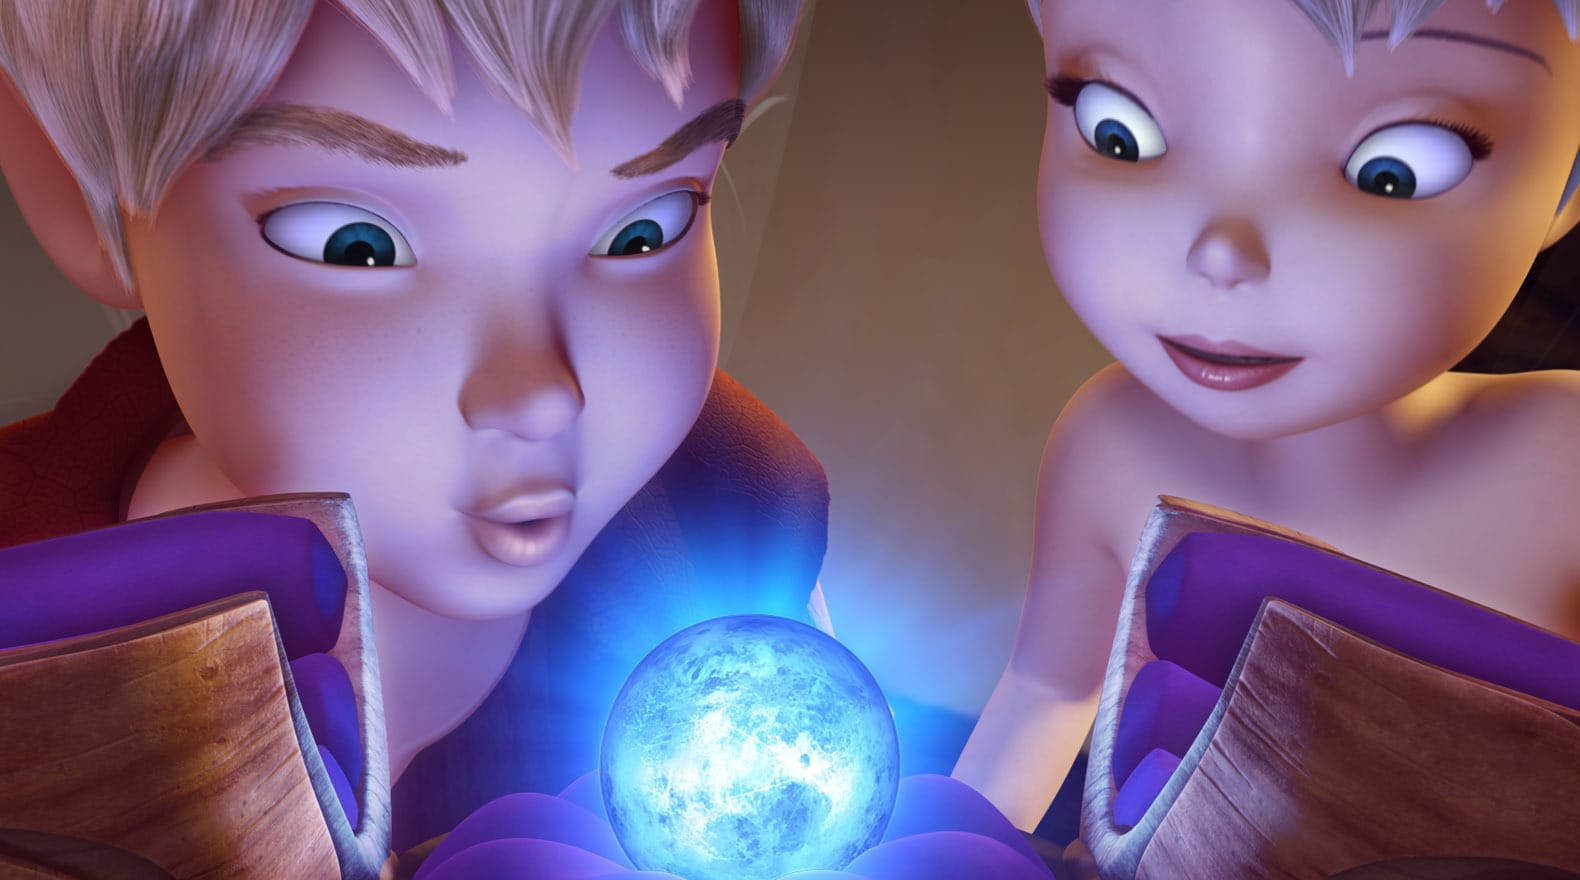 Tink and Terence work together to build a scepter for the moonstone.